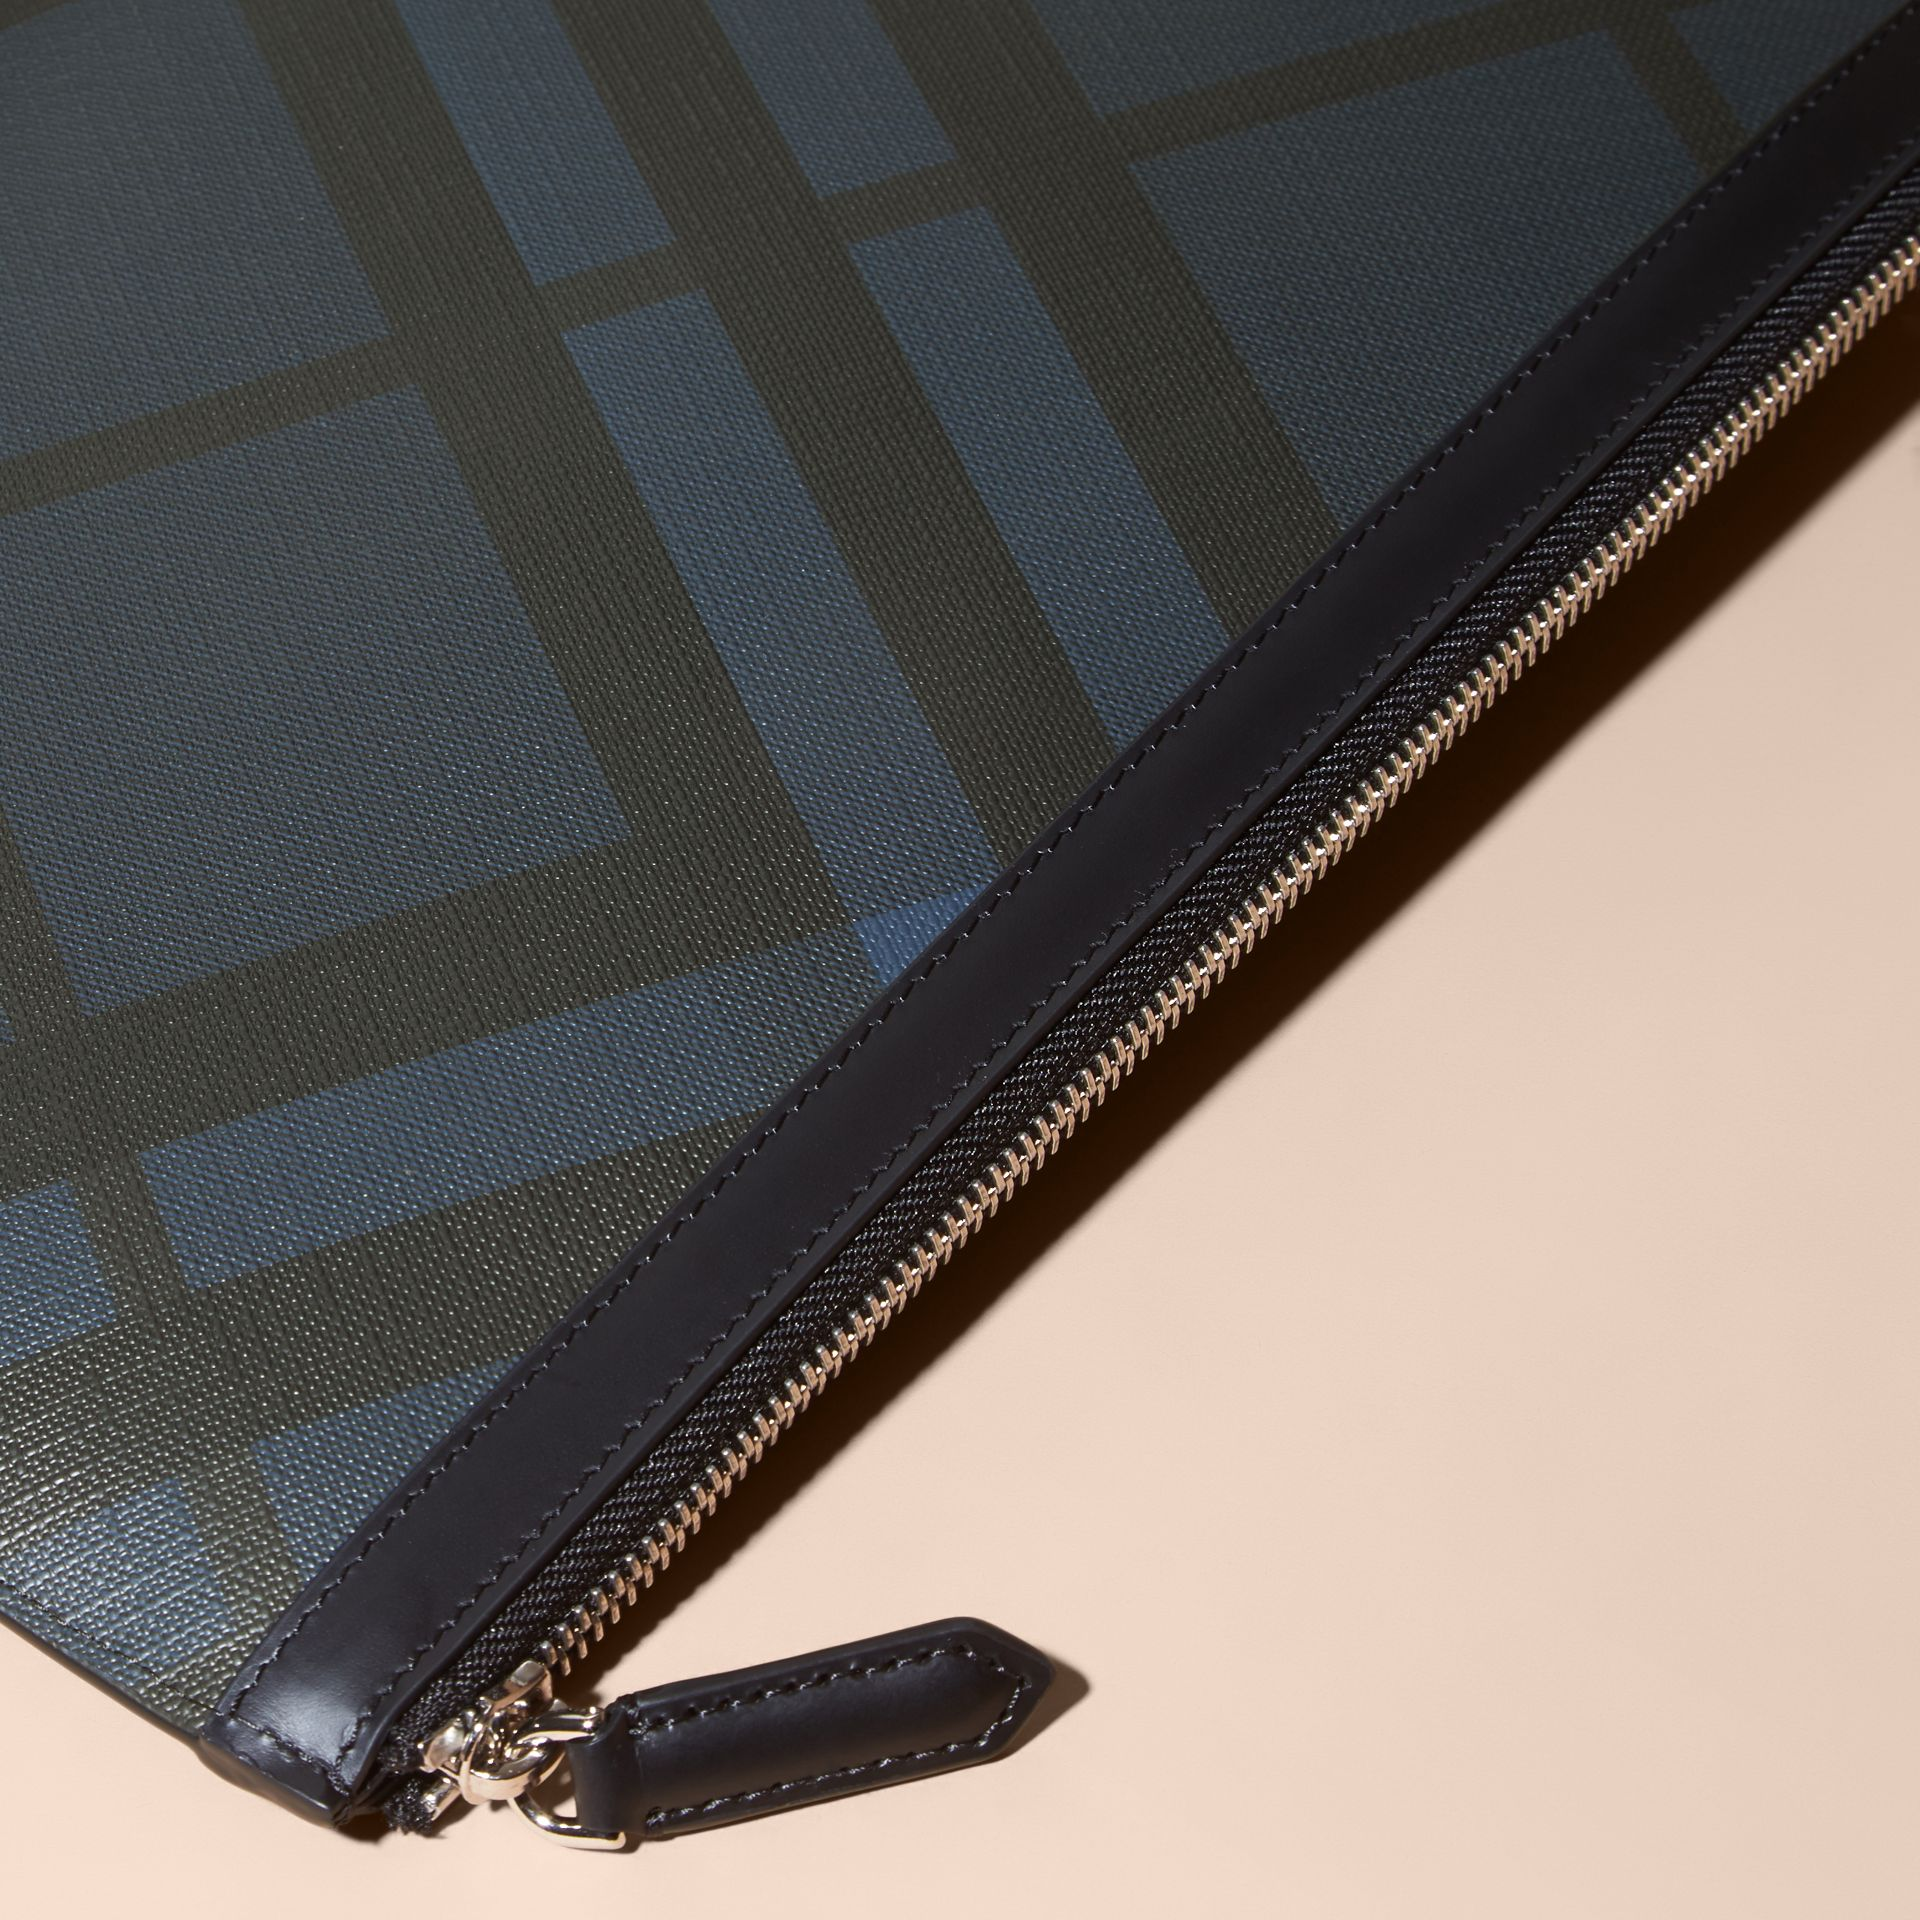 Zipped London Check Pouch in Navy/black - Men | Burberry - gallery image 3